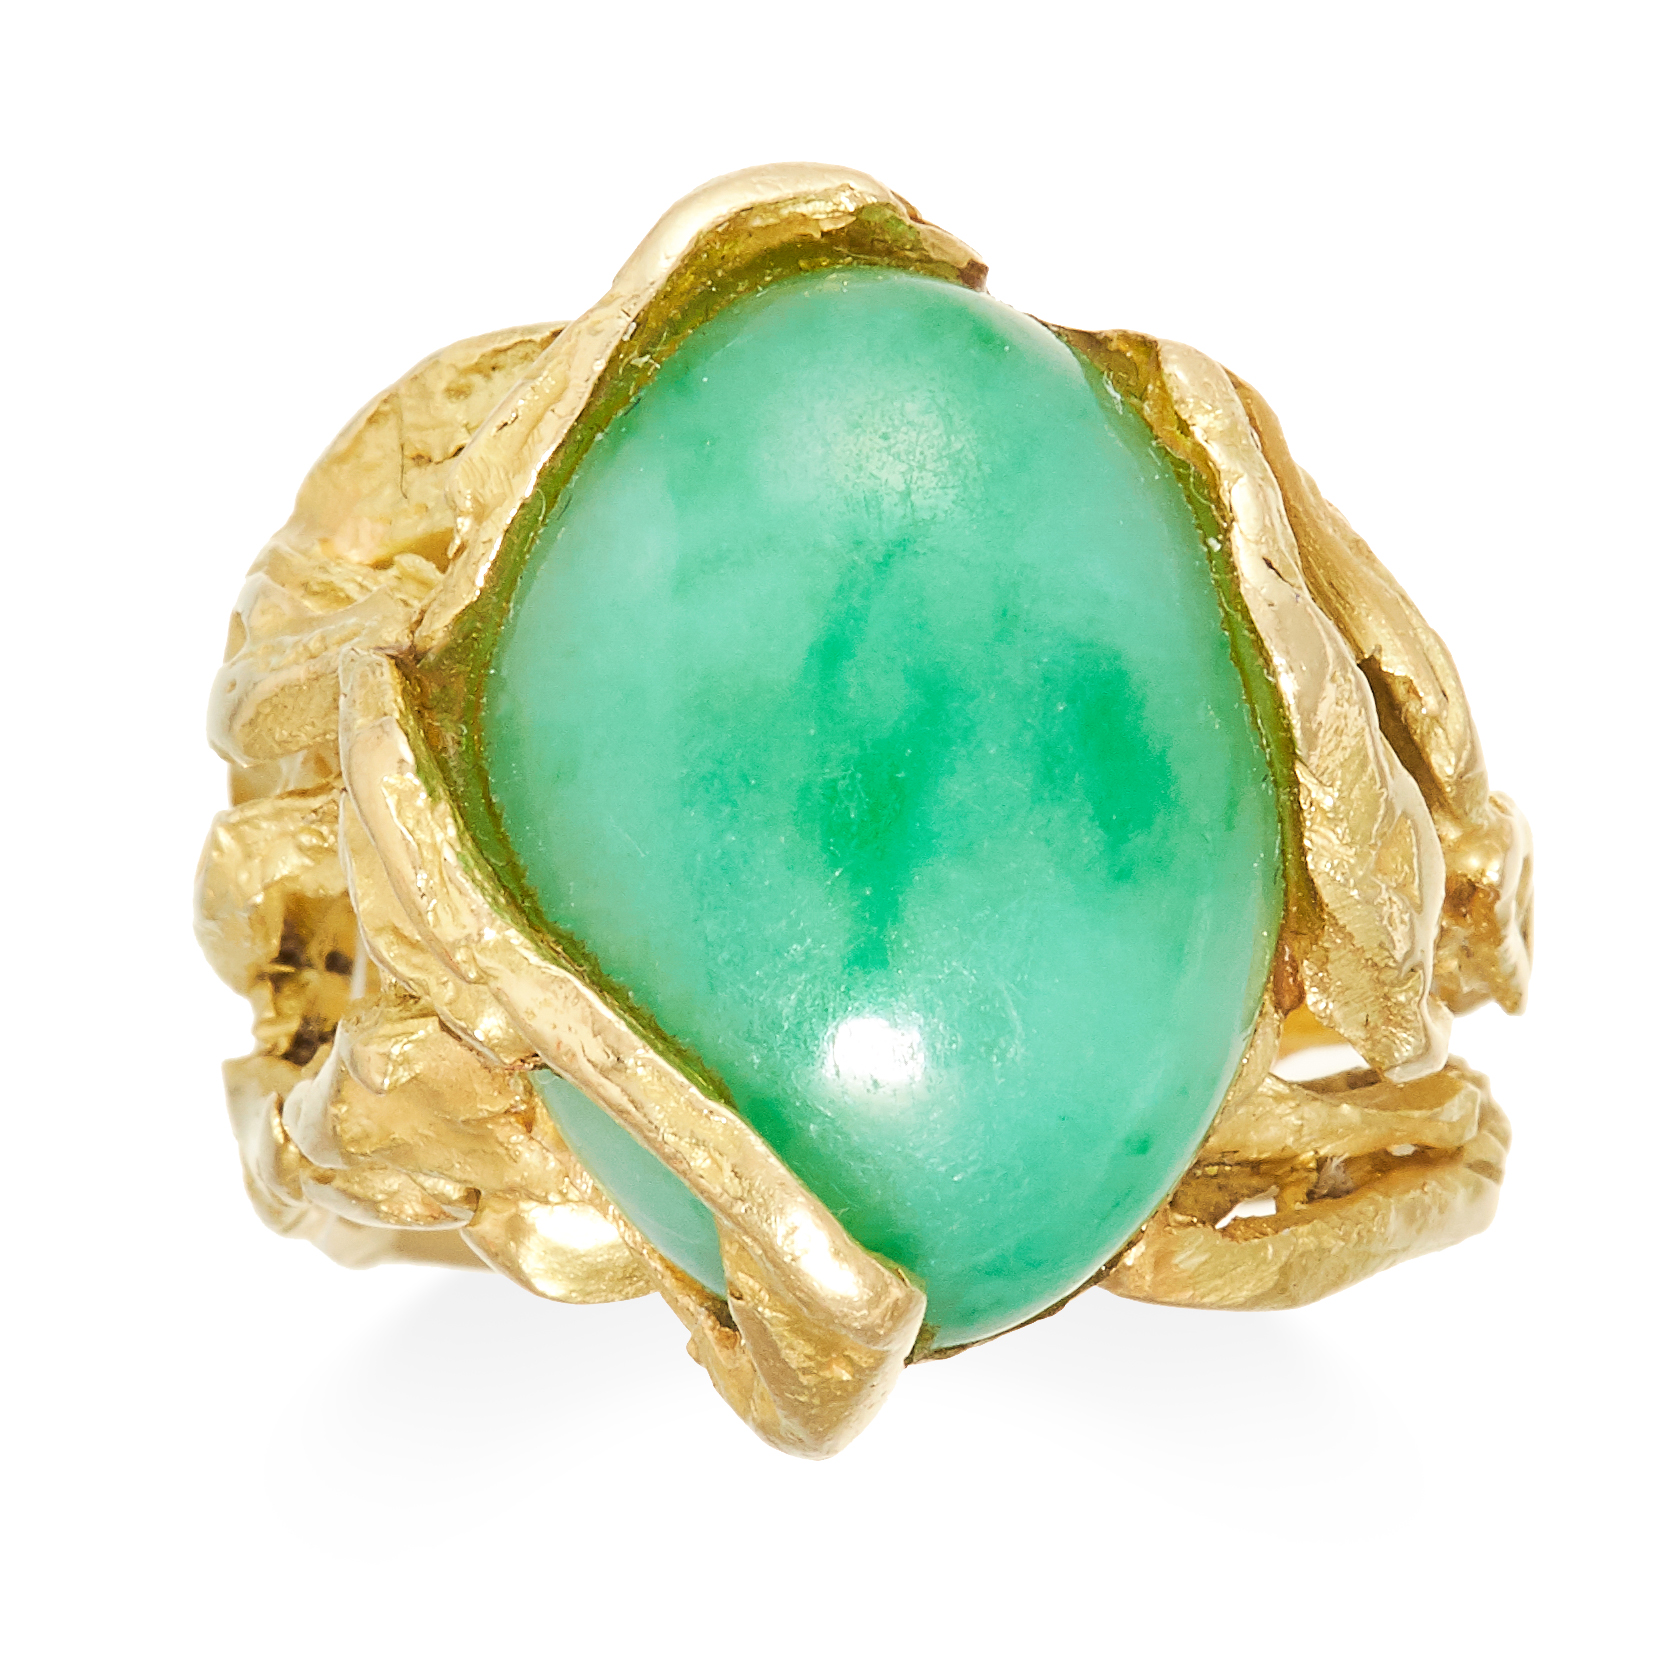 A VINTAGE JADEITE JADE DRESS RING in 18ct yellow gold, set with a polished cabochon piece of jade